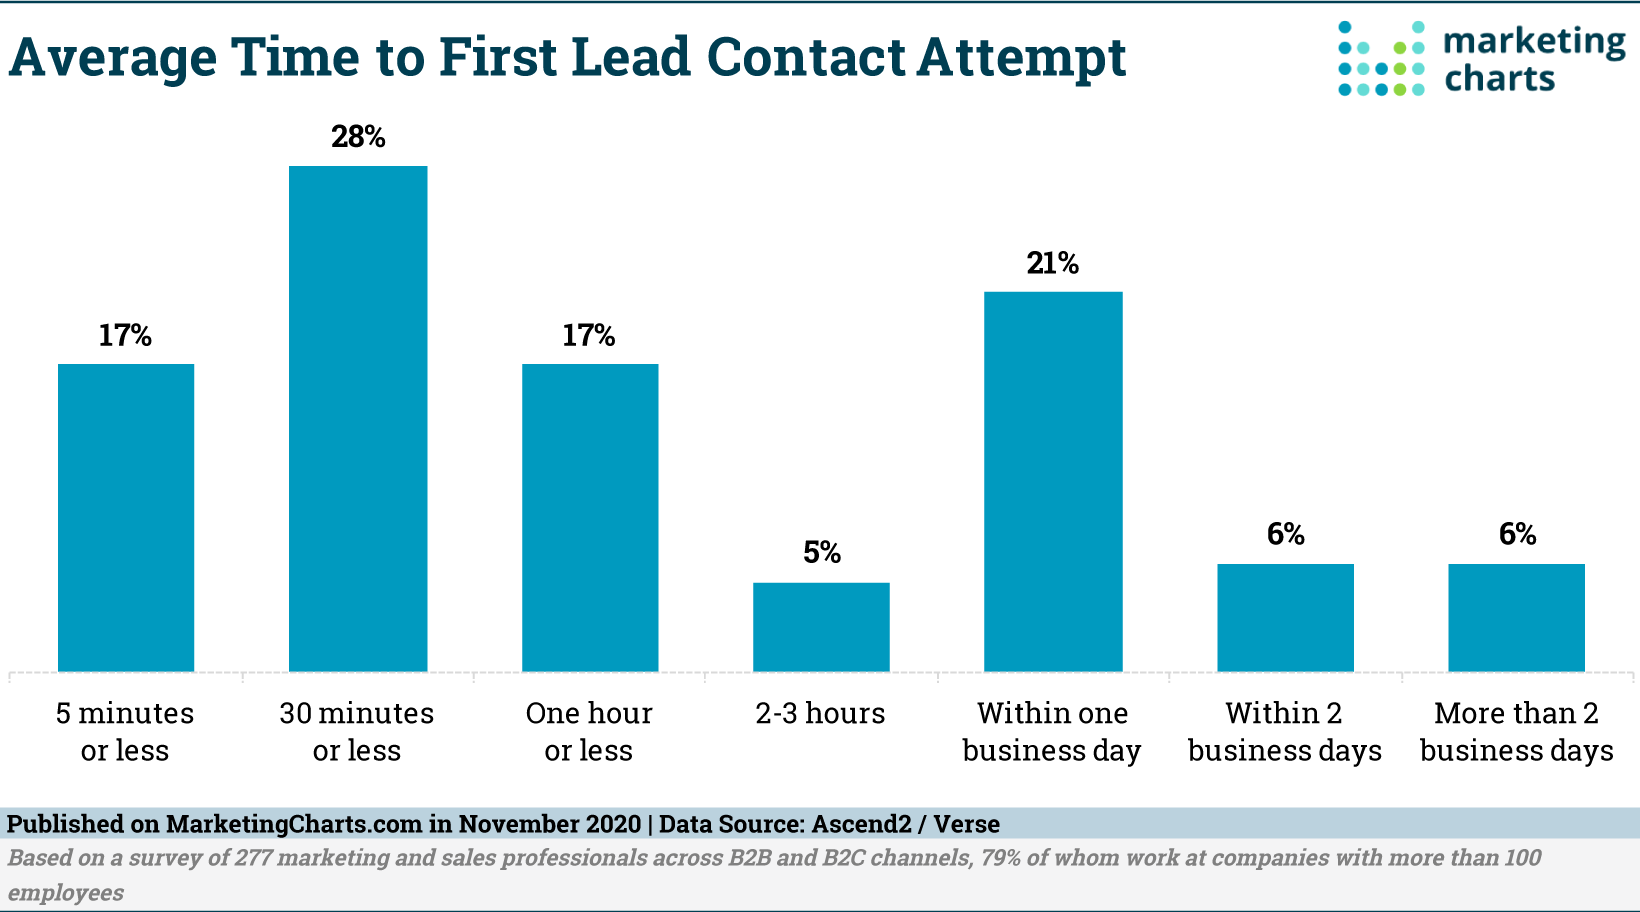 Ascend2Verse-Avg-Time-to-First-Lead-Contact-Attempt-Nov2020